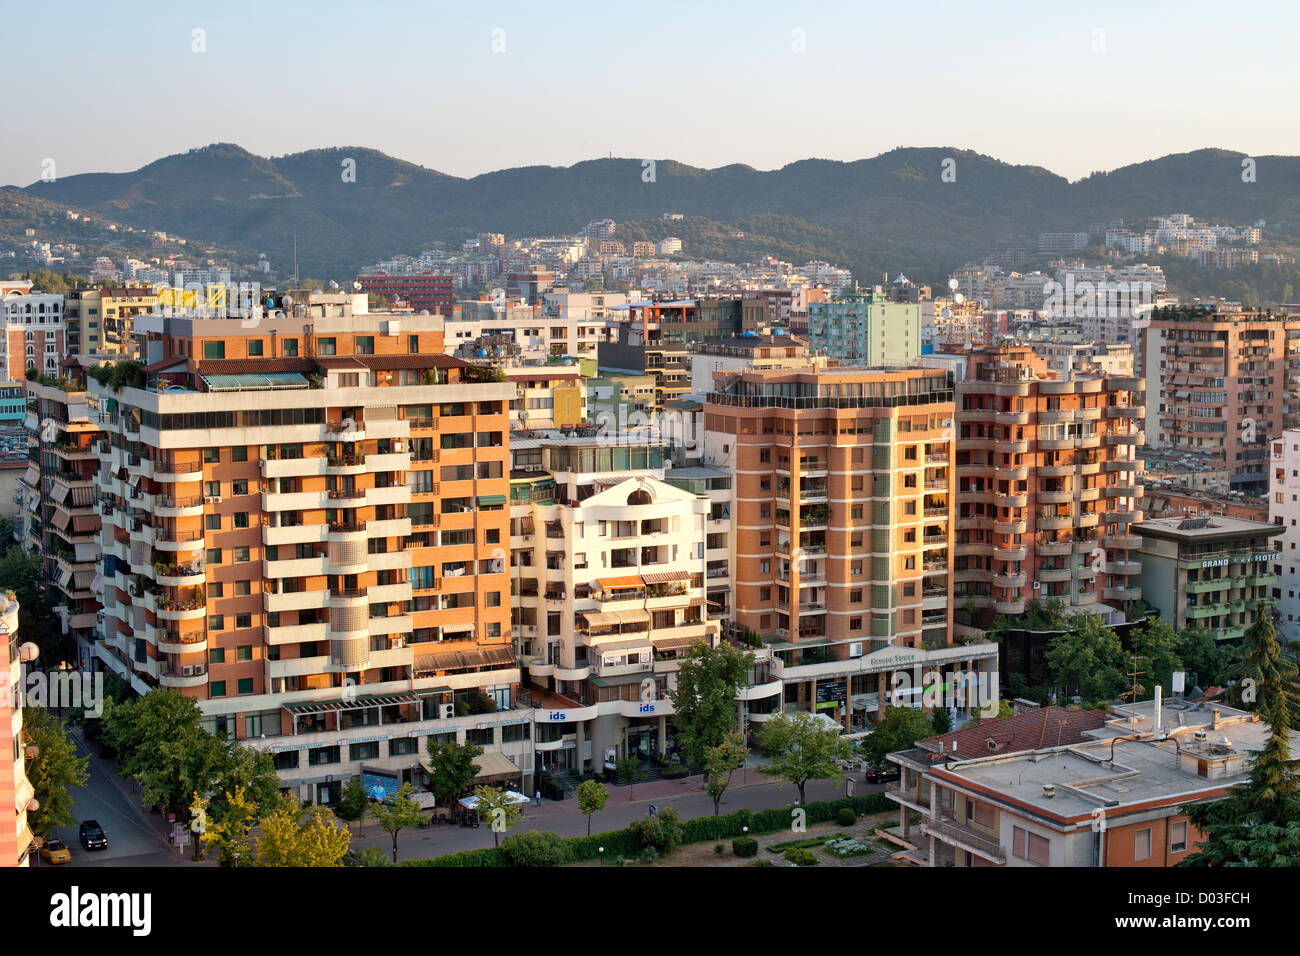 View across the city of Tirana, the capital of Albania. - Stock Image